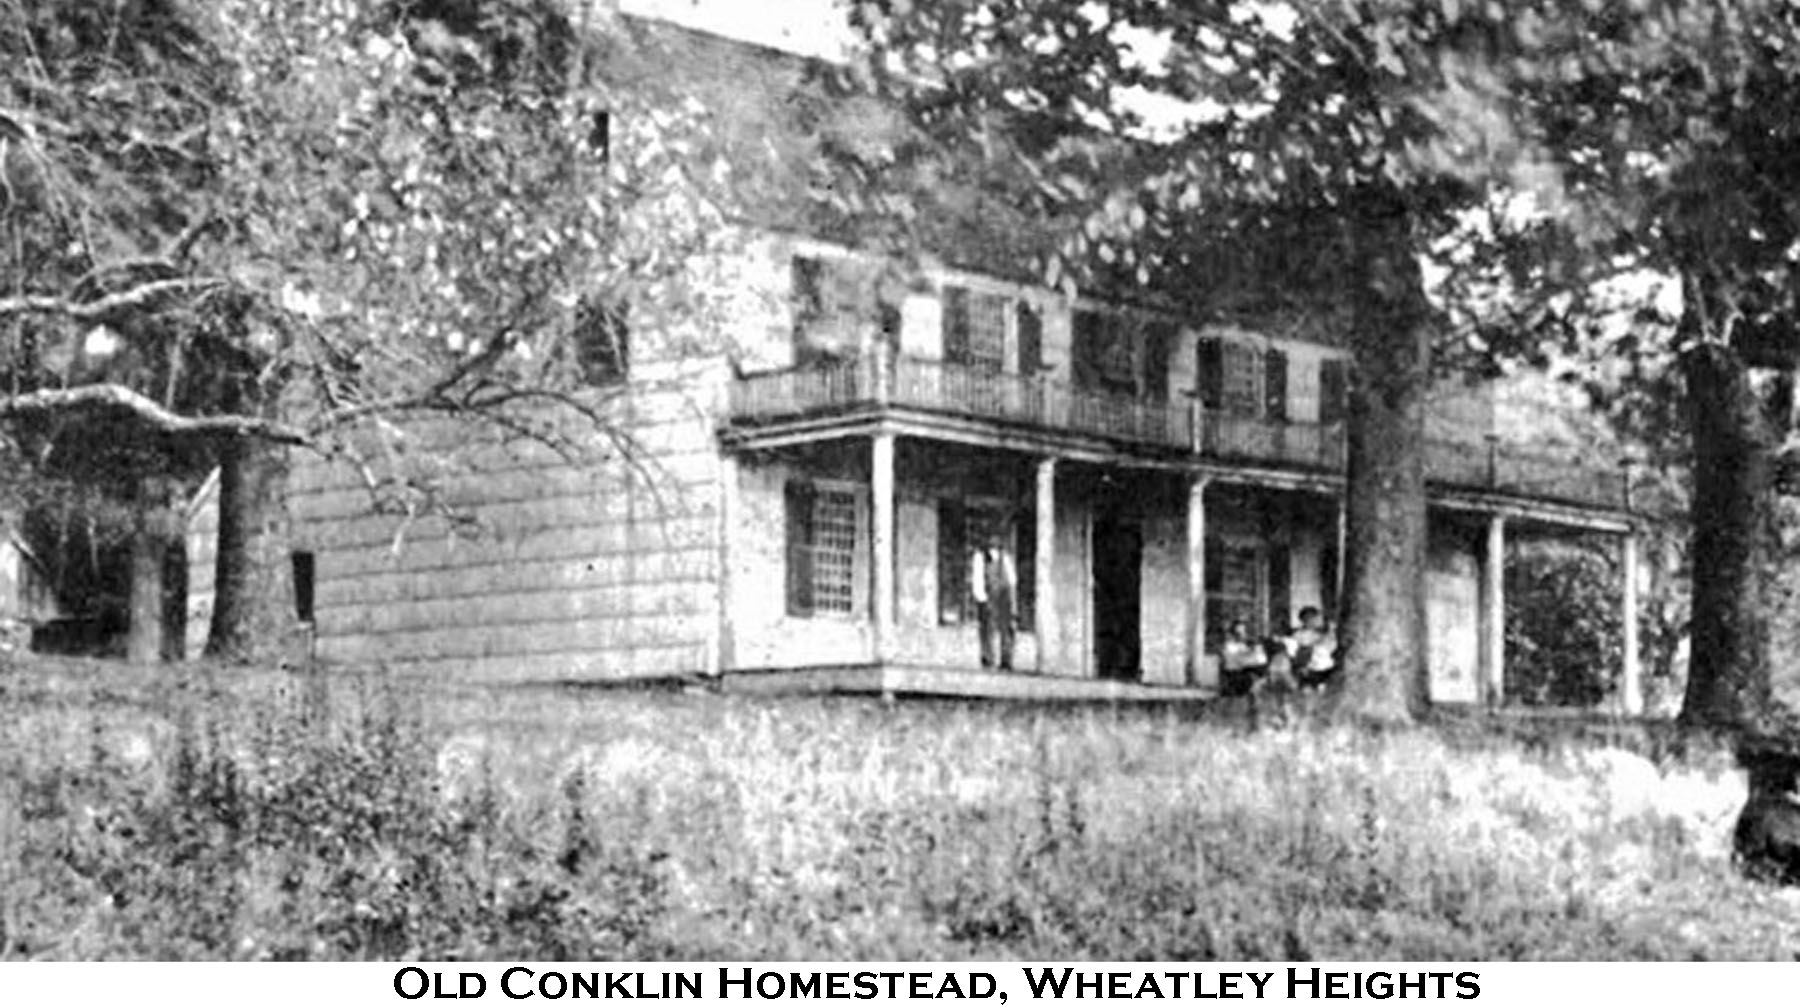 Old Conklin Homestead